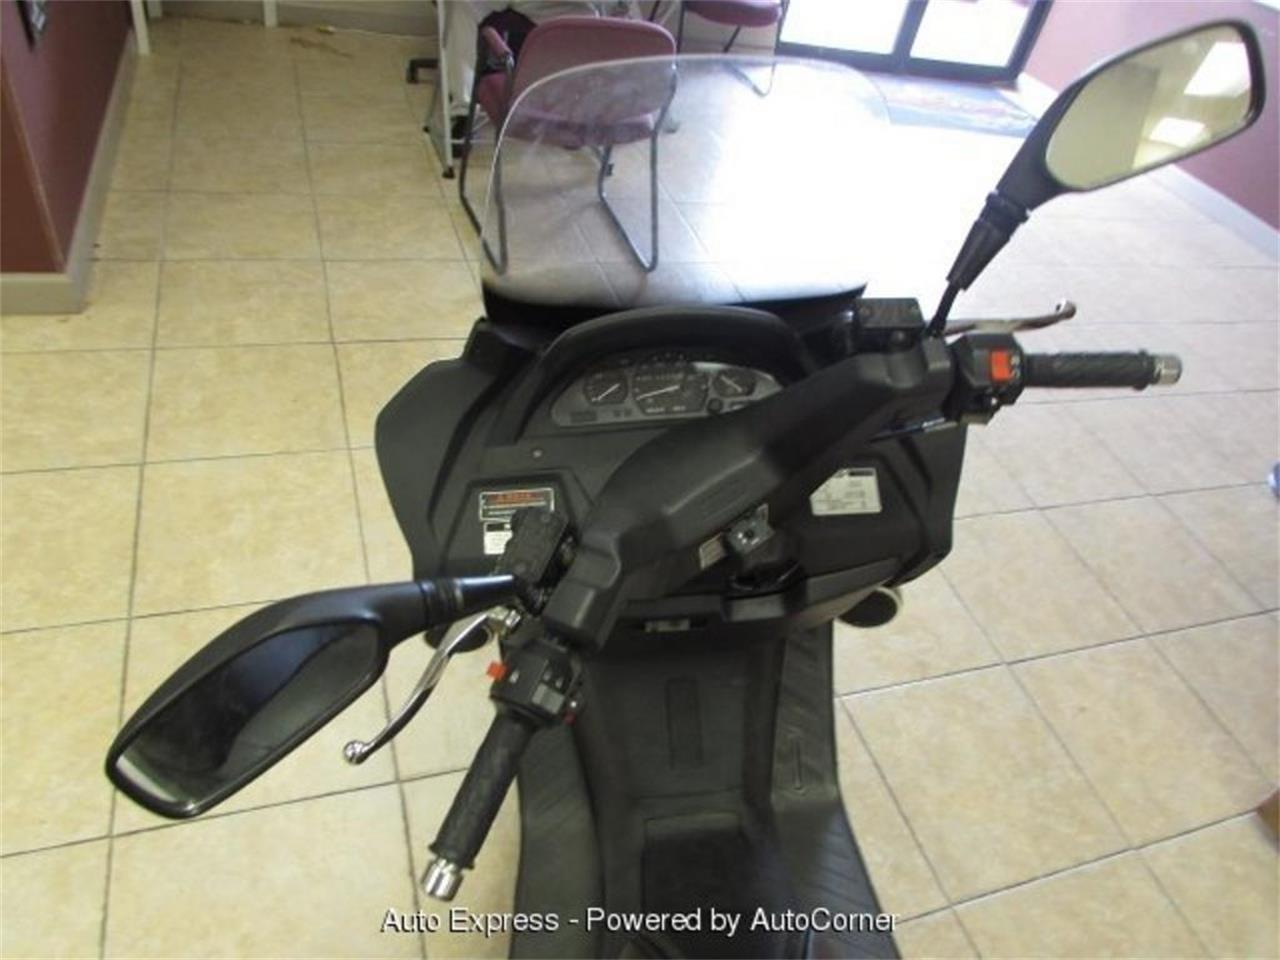 2008 Linhai Scooter for sale in Orlando, FL – photo 4